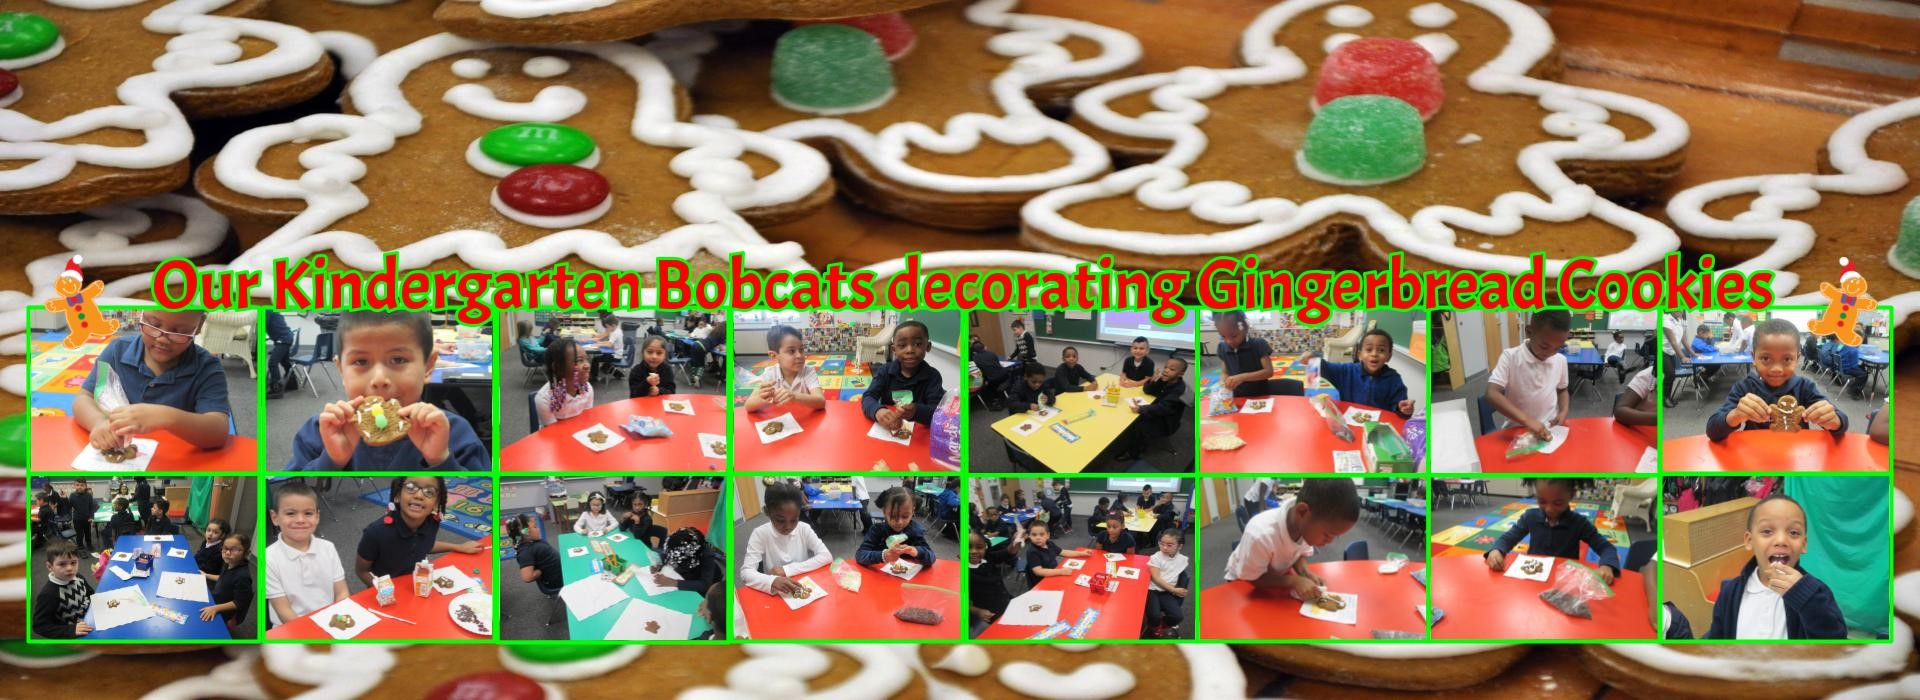 WW- Gingerbread Cookie Decorating